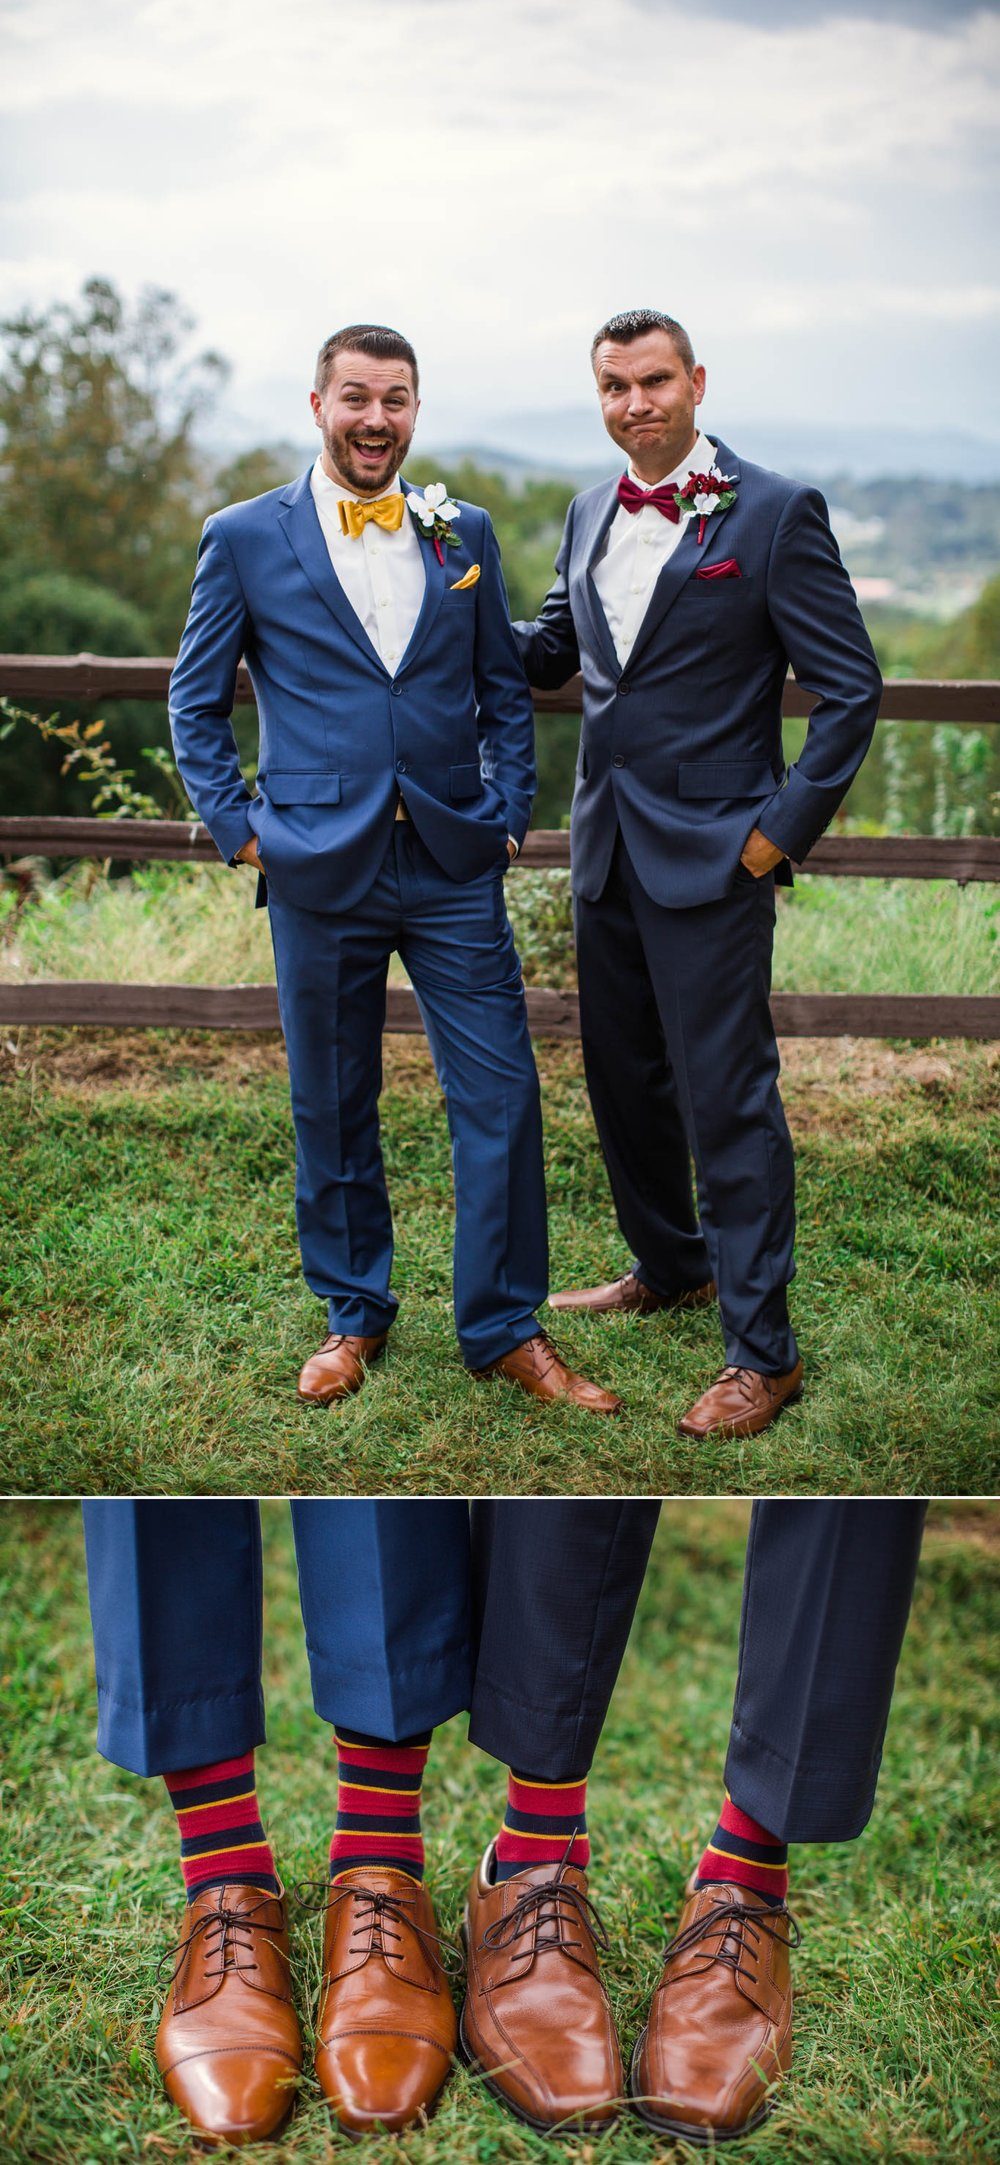 Portrait of the Groomsmen - Meredith + Jason - The Crest Center and Pavilion in Asheville, NC - Raleigh Wedding Photographer